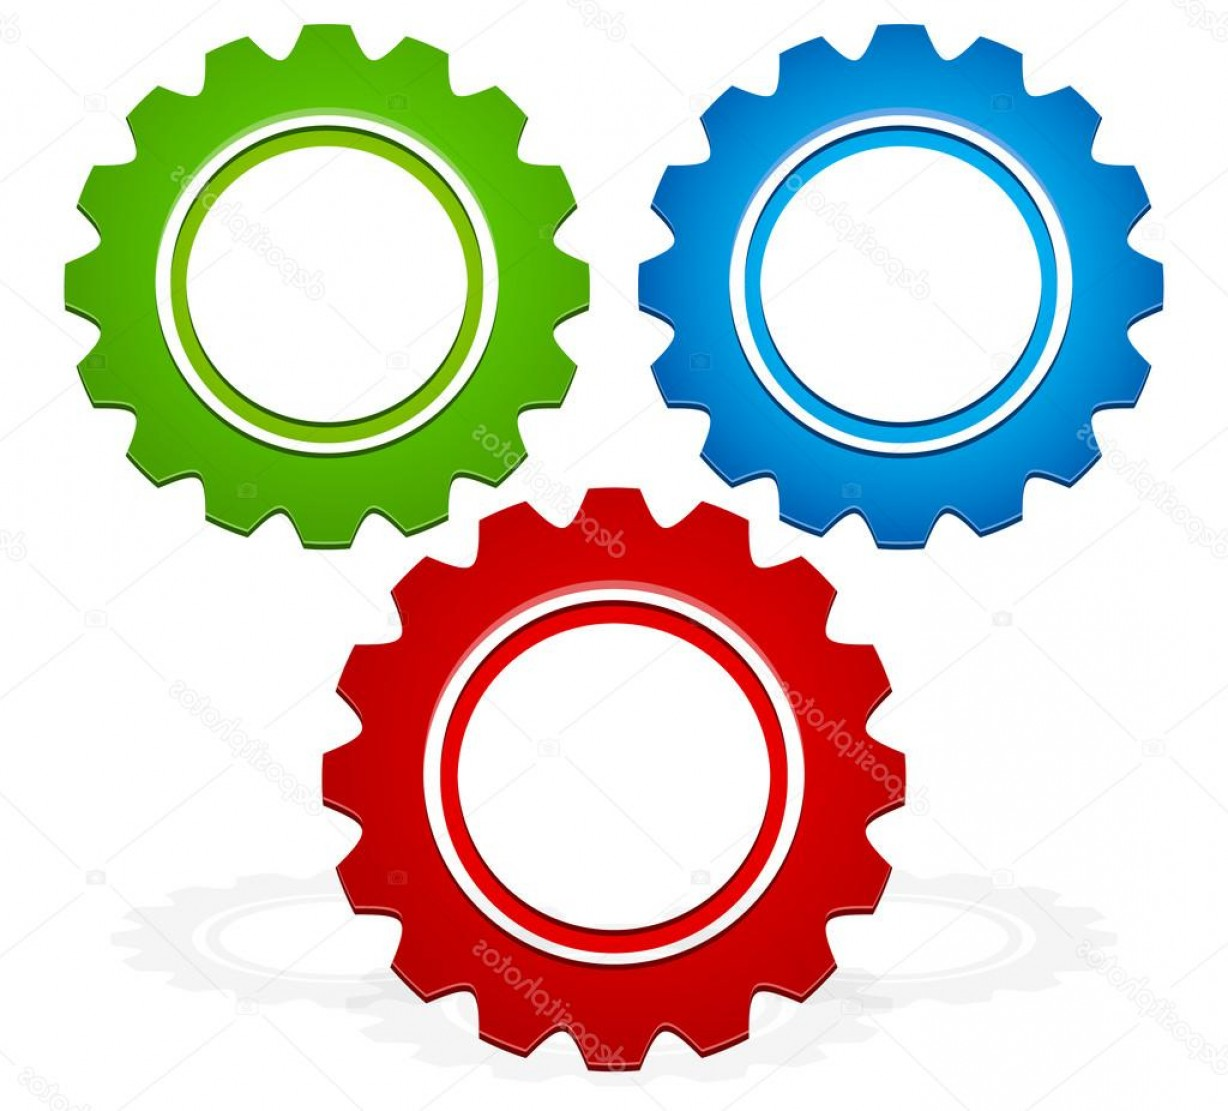 Vector Gear Graphics: Stock Illustration Colorful Gear Composition Vector Graphics